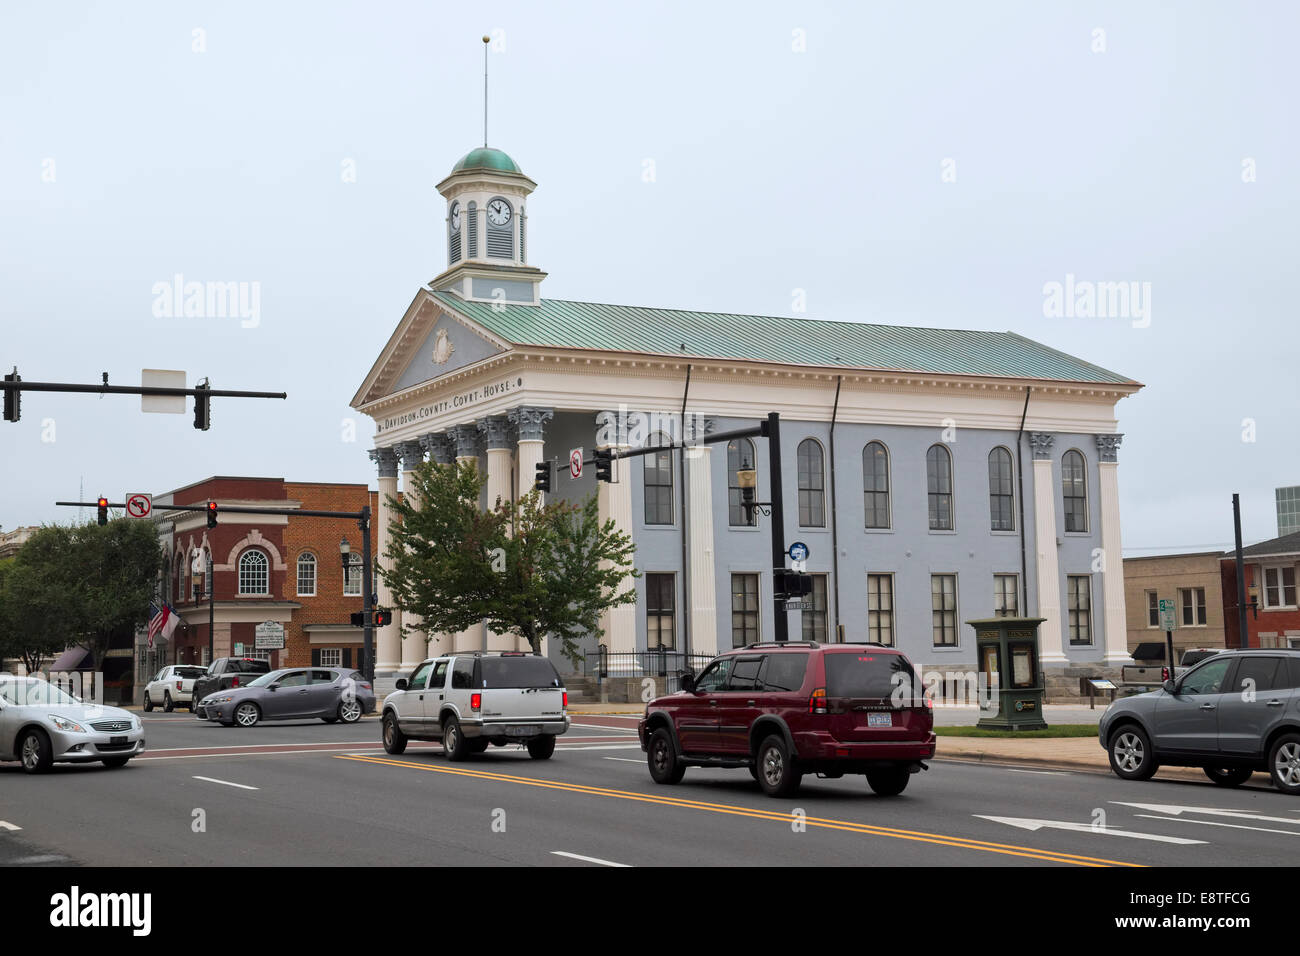 Historical Davidson County Courthouse along Main ST